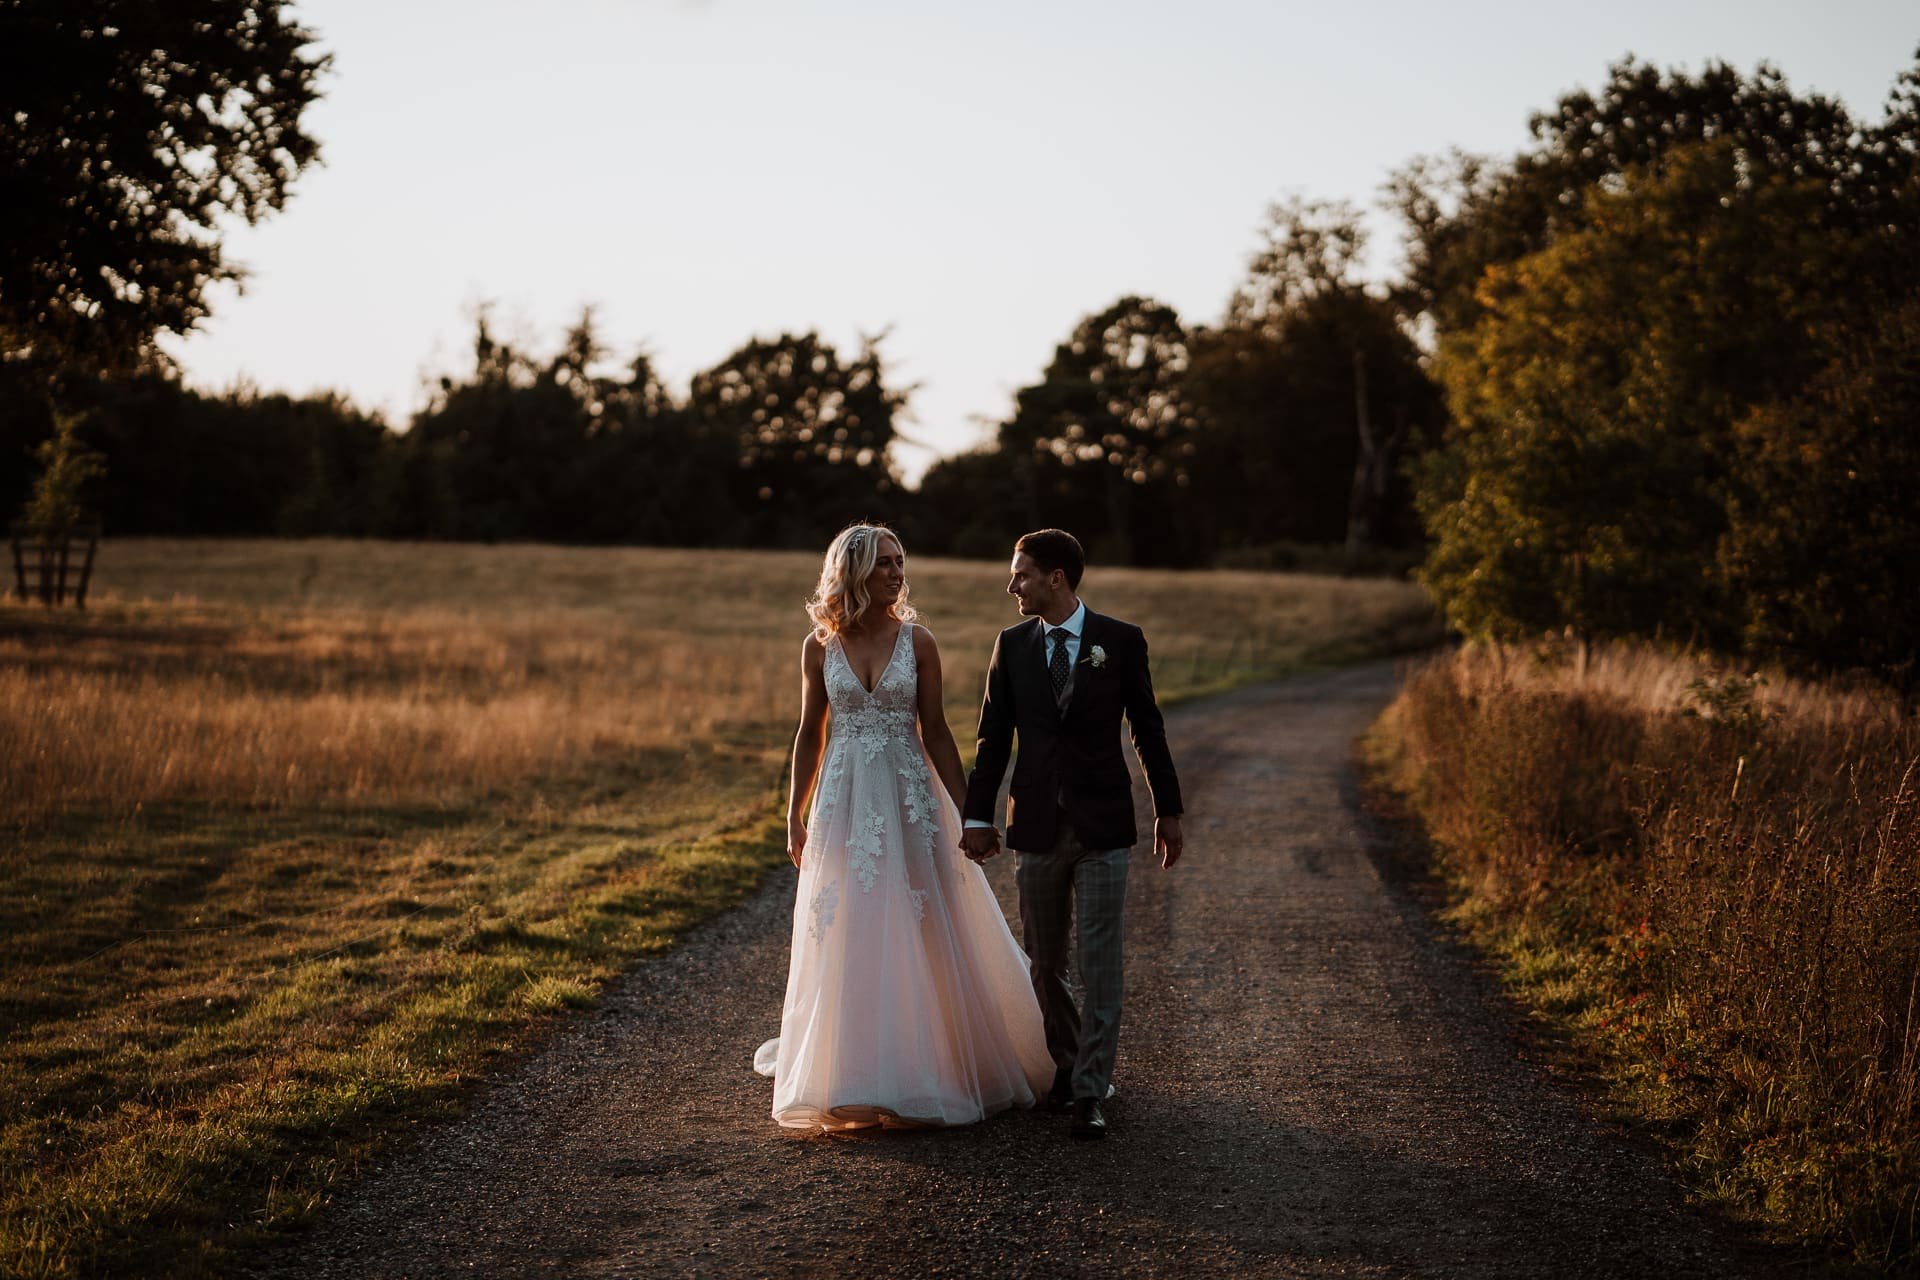 Bride and Groom walking together at sunset